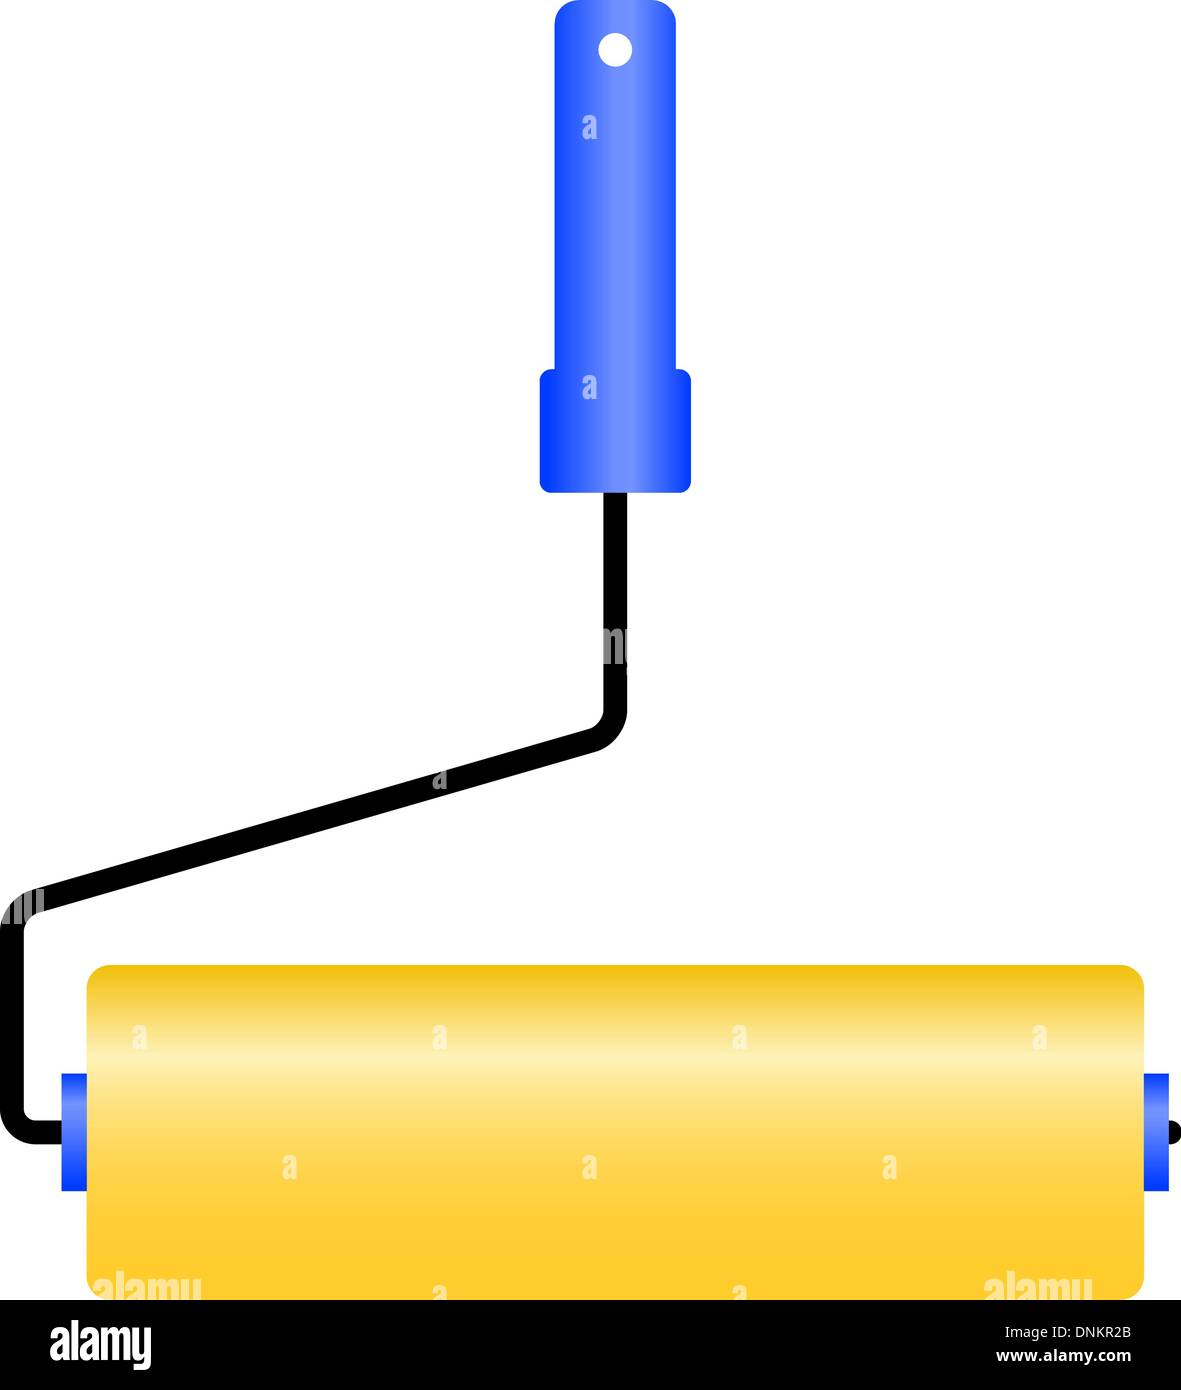 The new roller for painting. Vector illustration. - Stock Image